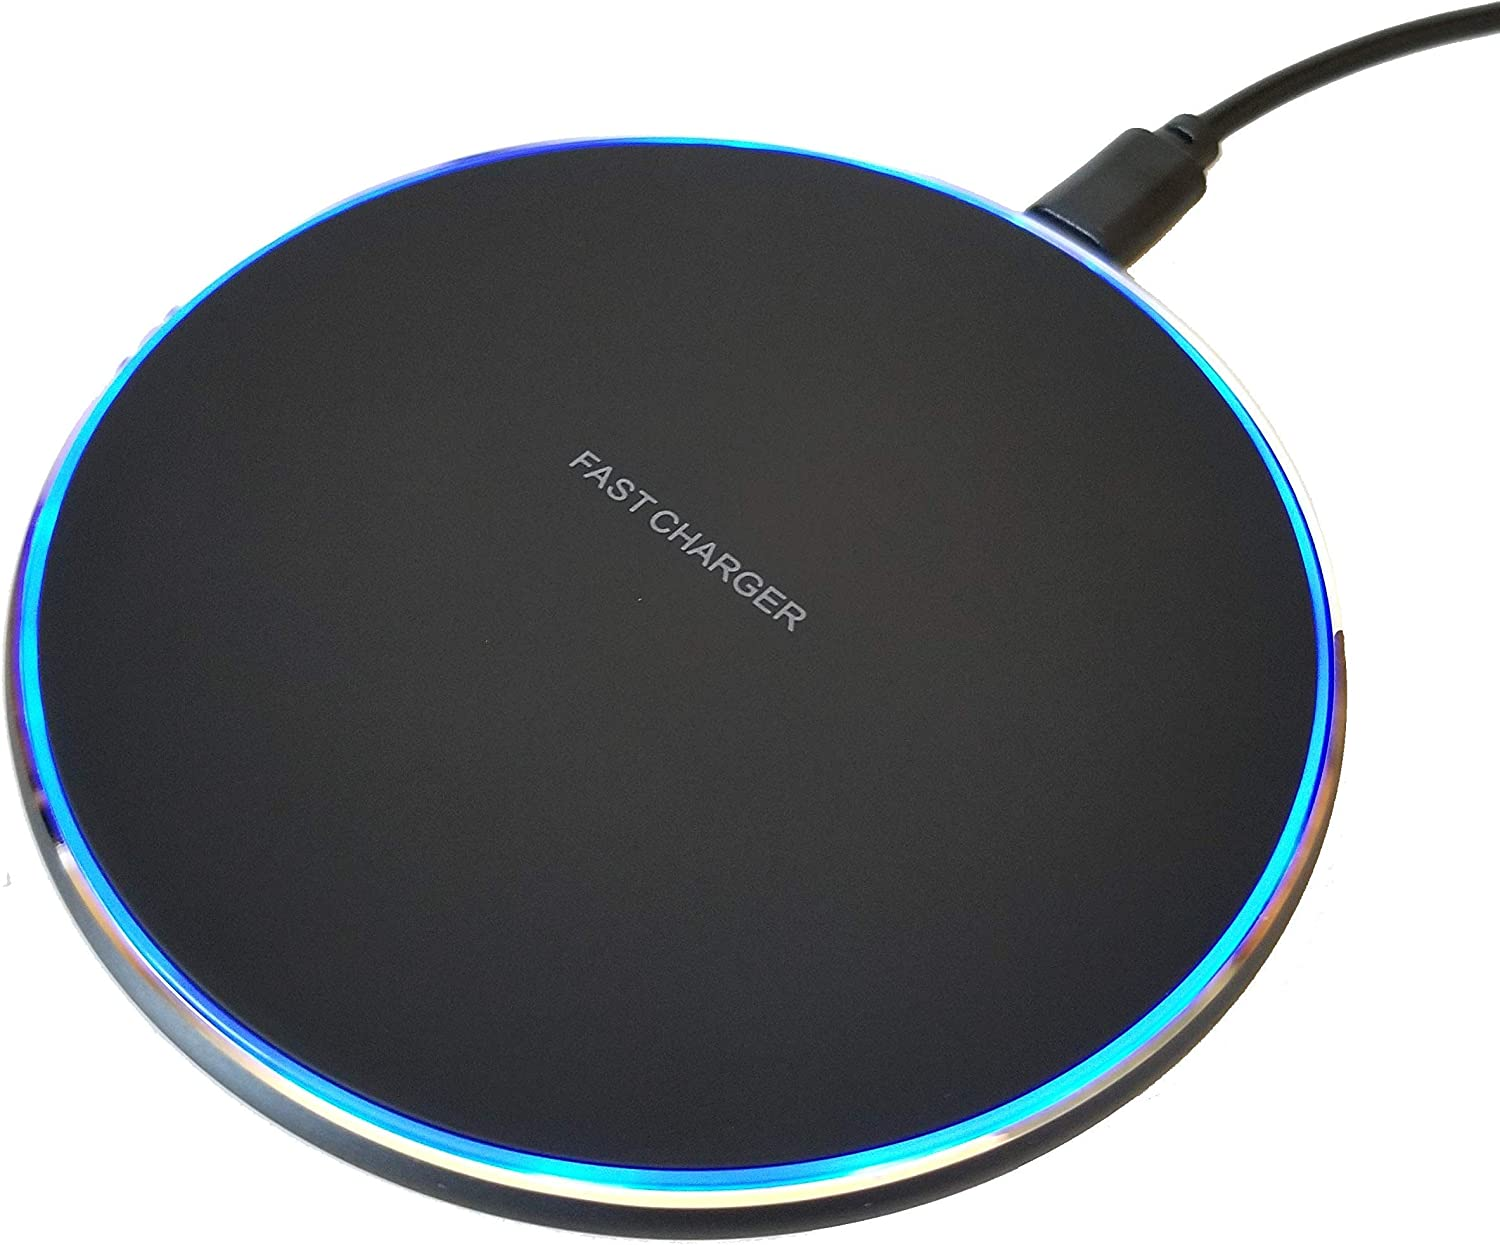 KELBRIA - Universal 15W Max Fast Wireless Charger - User-Friendly Design, Ultra Slim - Compatible with iPhone, iWatch, Air Pods and Samsung Products